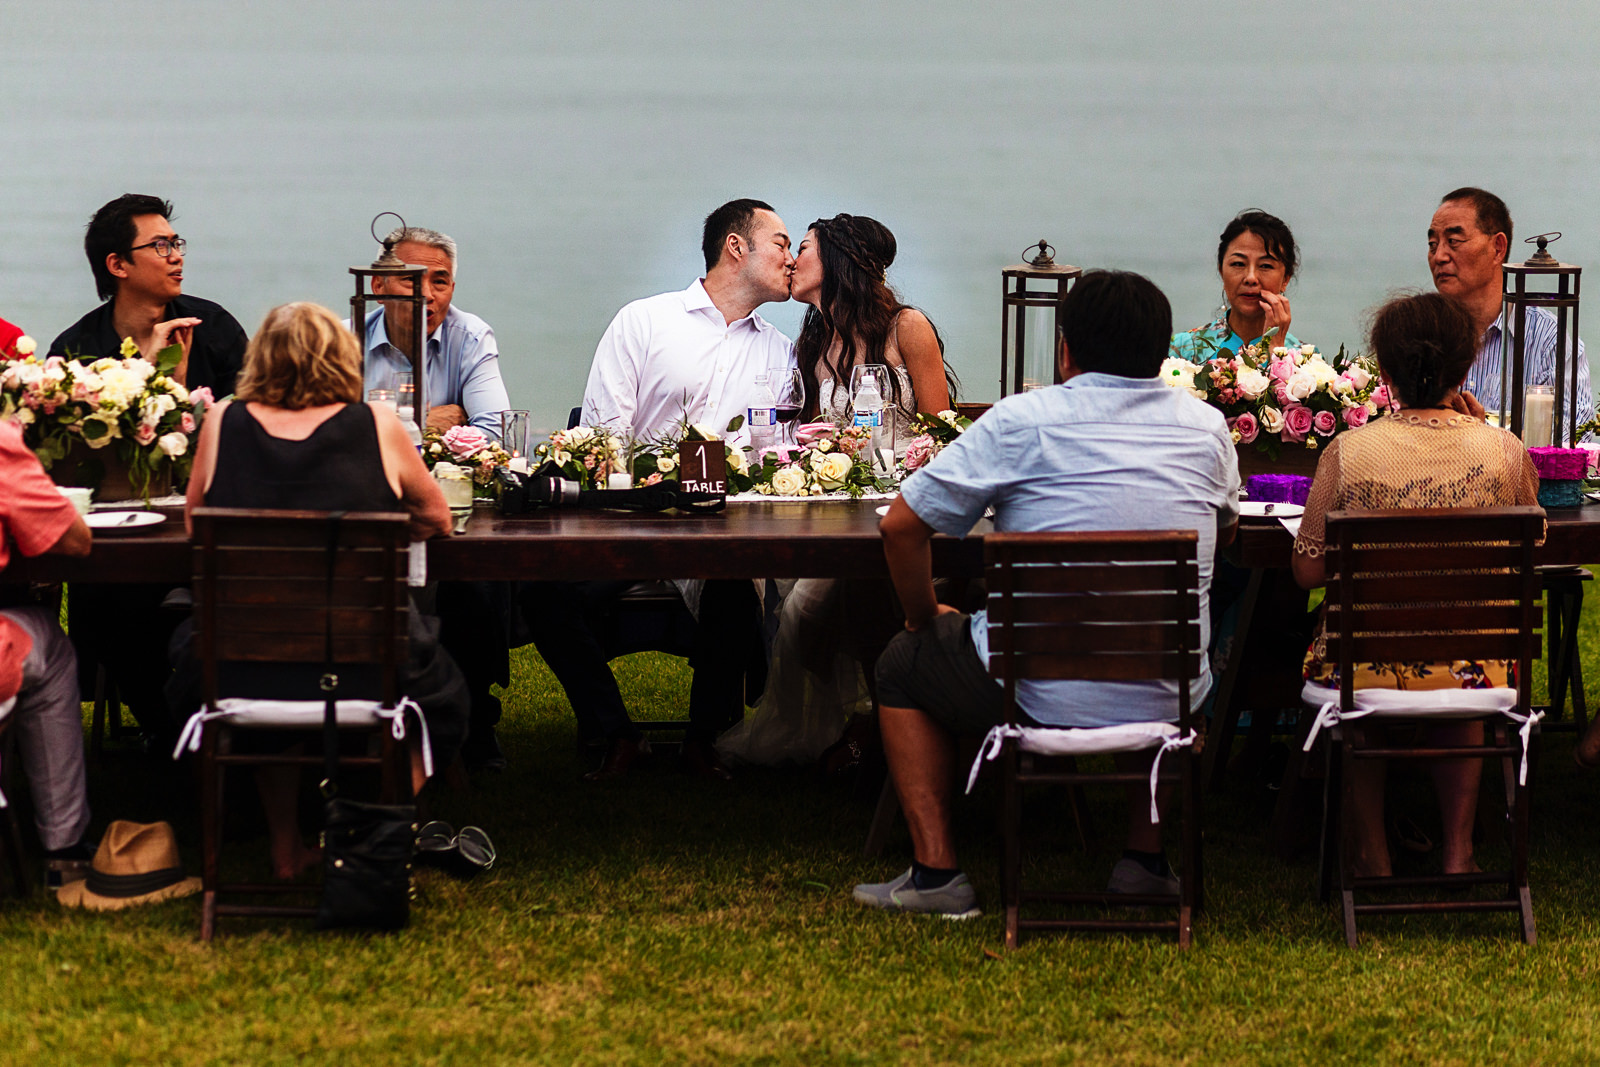 Groom and bride kiss while sitting at the table while dinner is about to begin.